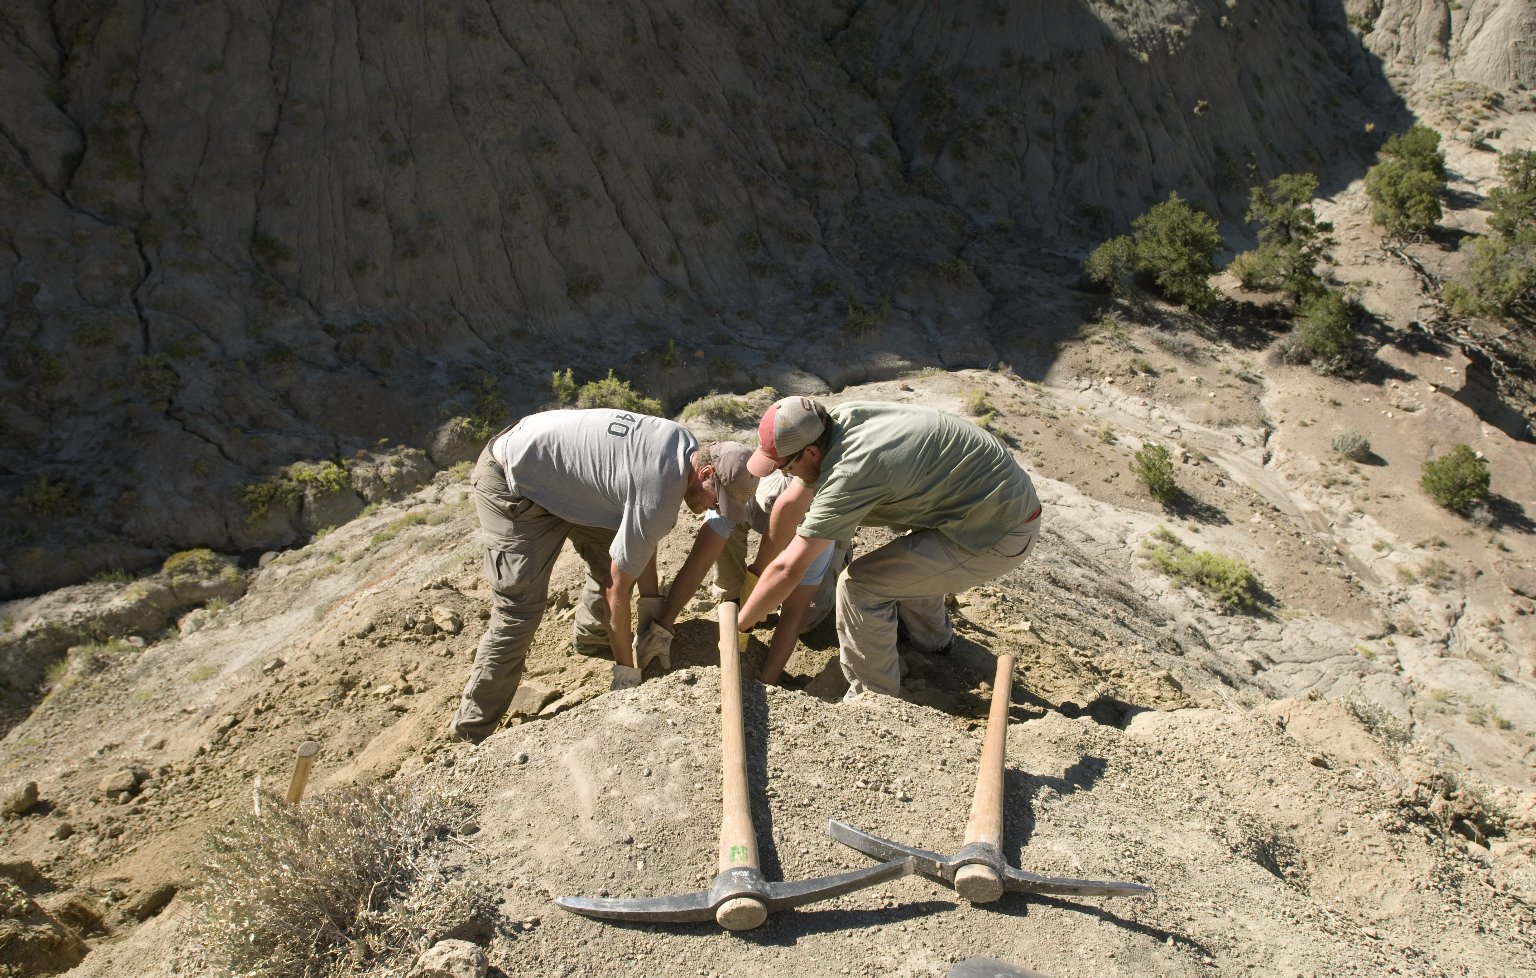 L-R: Dr. Ian Miller, DMNS Volunteer David Allen (obscured), and DMNS Volunteer Dane Miller(foreground), struggle to remove a large rock specimen.